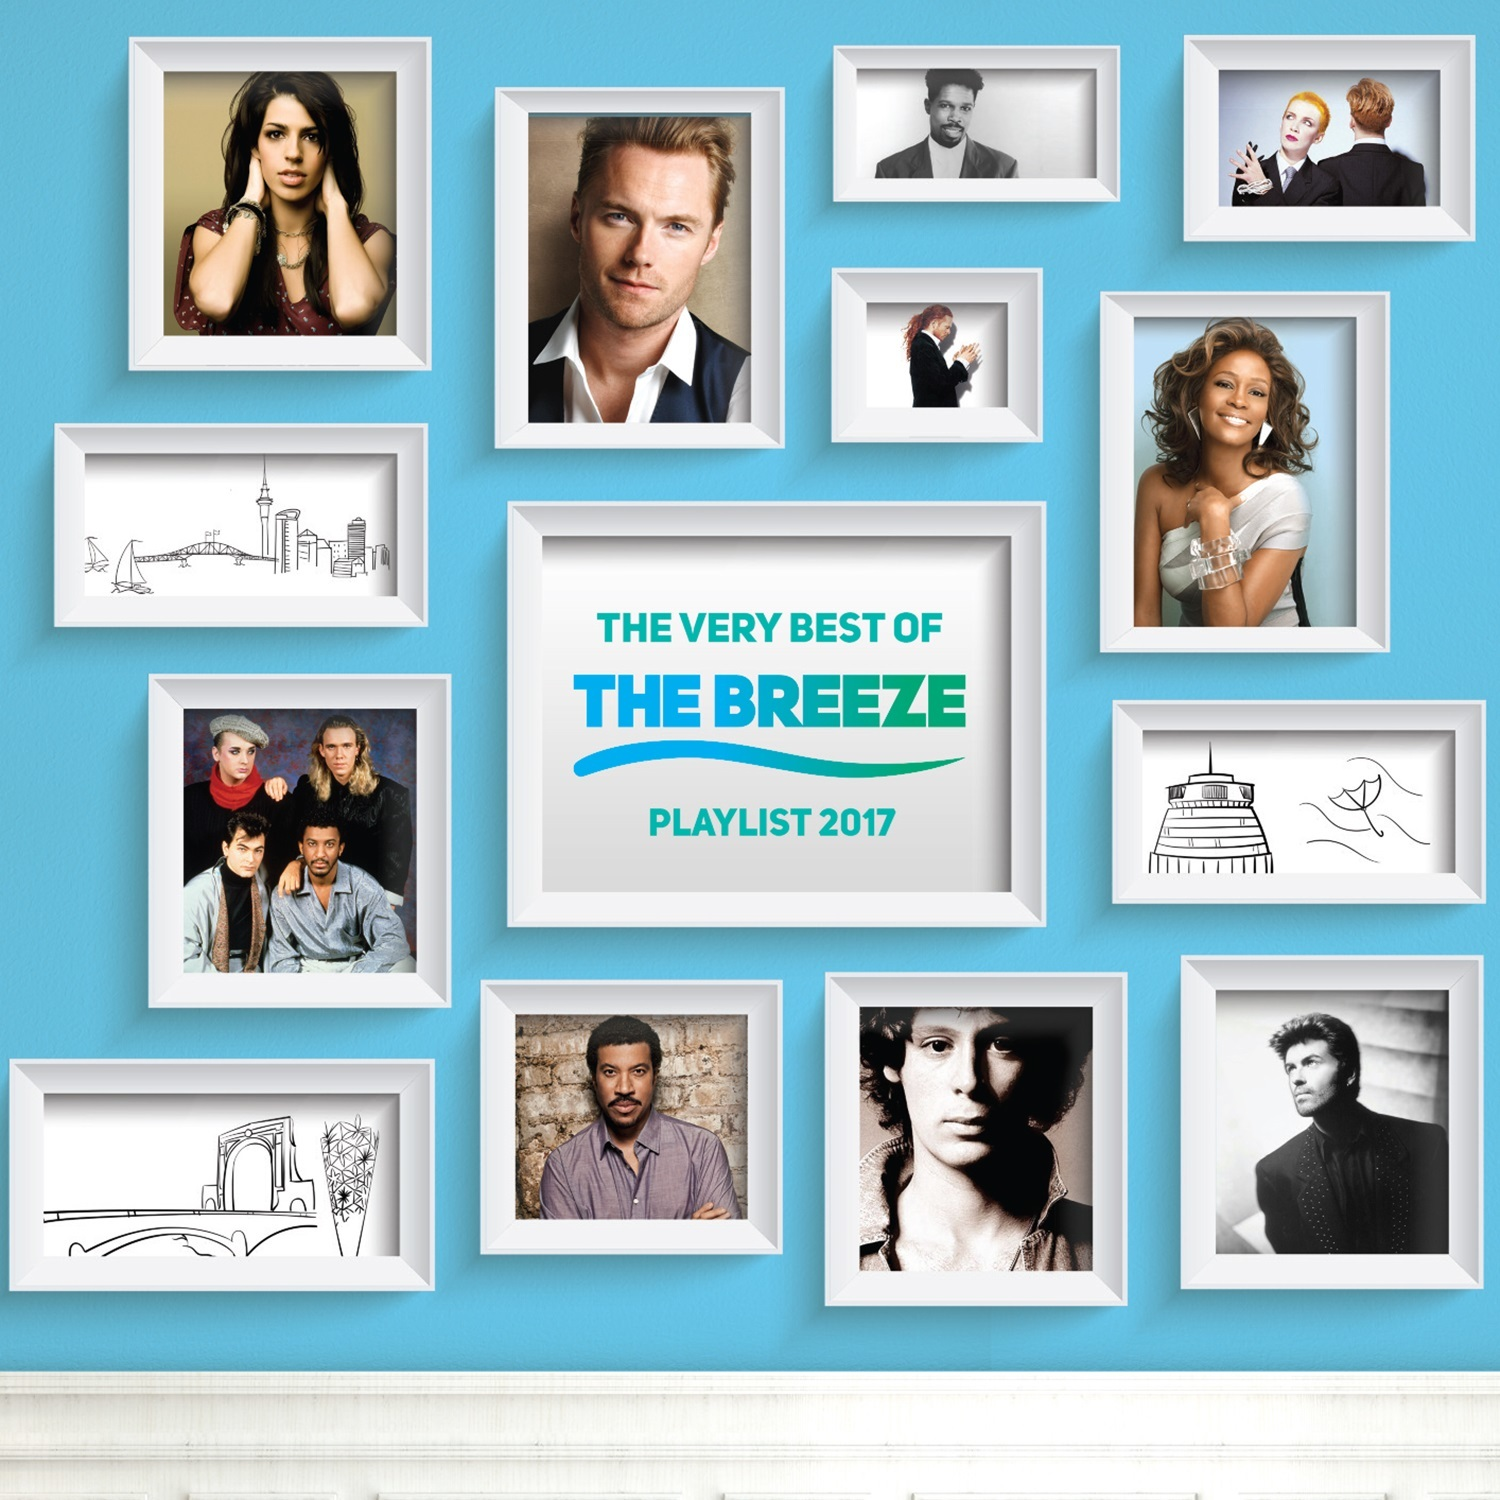 The Very Best Of The Breeze Playlist 2017 (2CD) by Various image